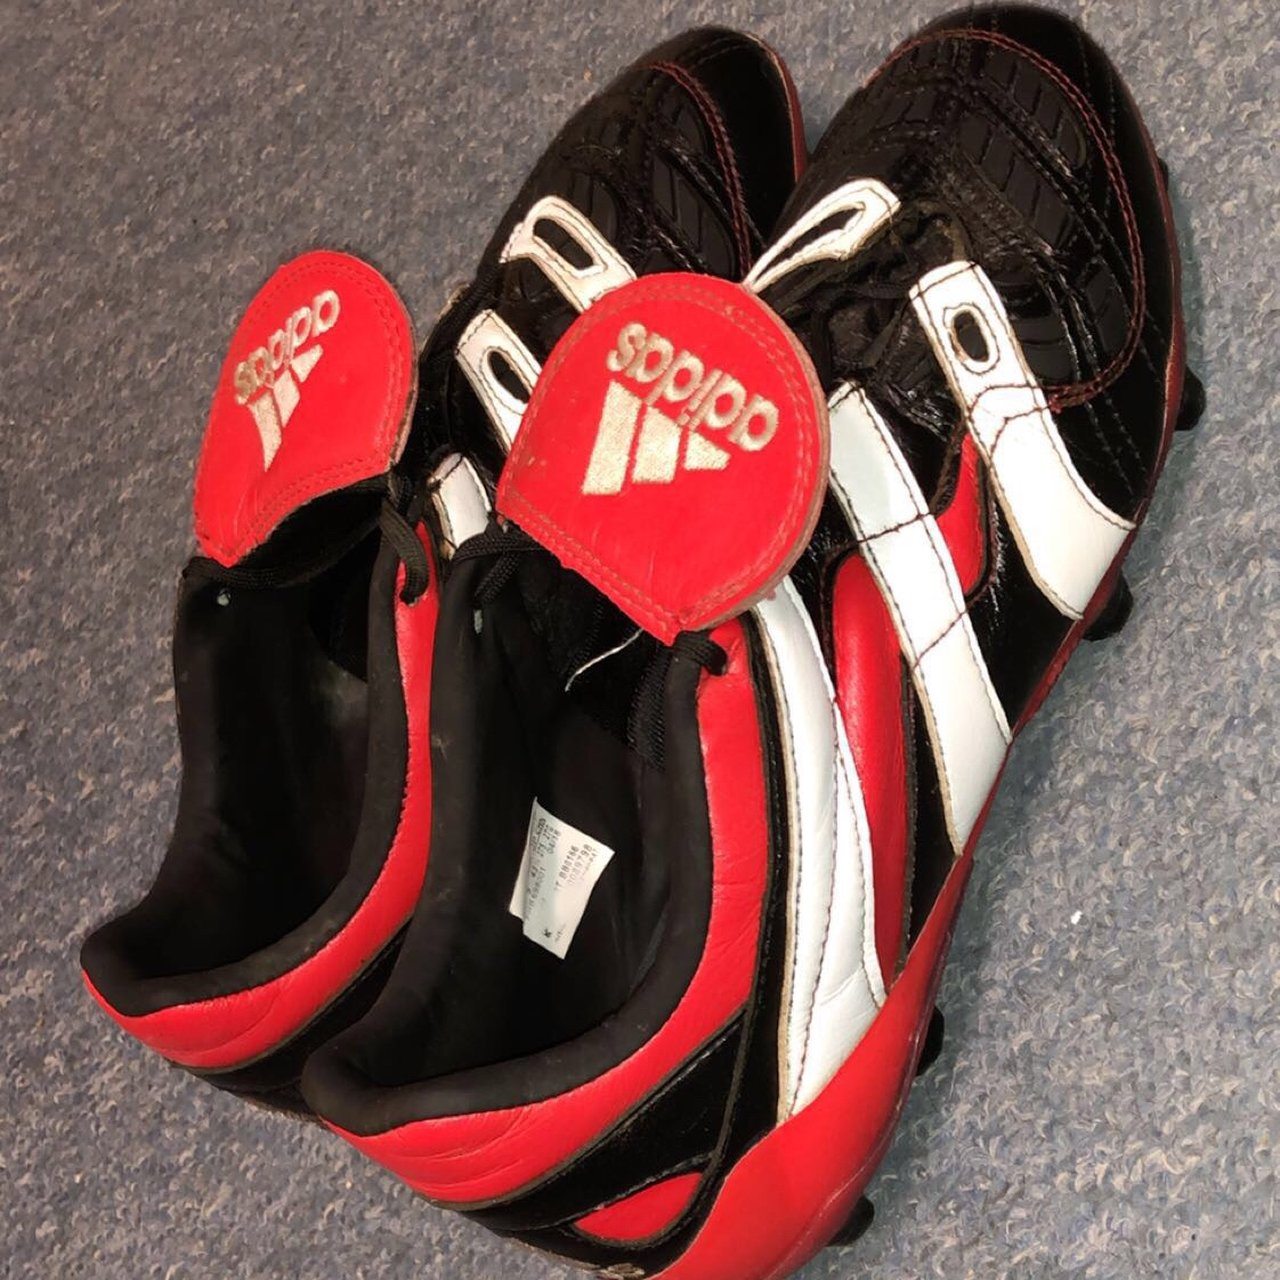 df93ba8f502d ... germany rjh19. last month. london united kingdom. adidas predator  accelerator 2018 remake 20057